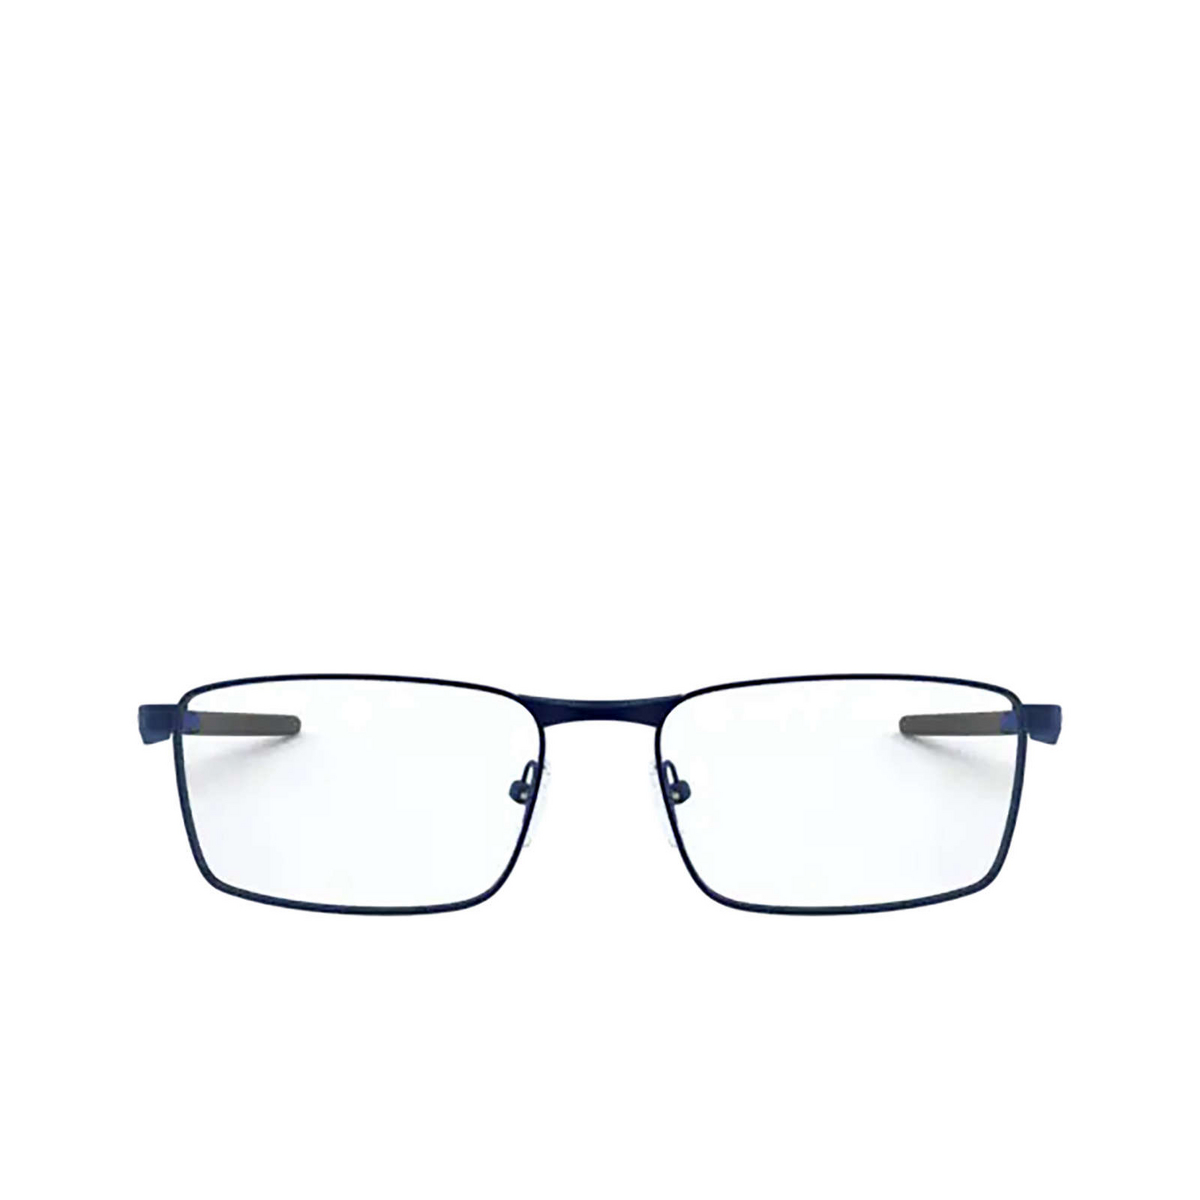 Oakley® Rectangle Eyeglasses: Fuller OX3227 color Matte Midnight 322704 - front view.